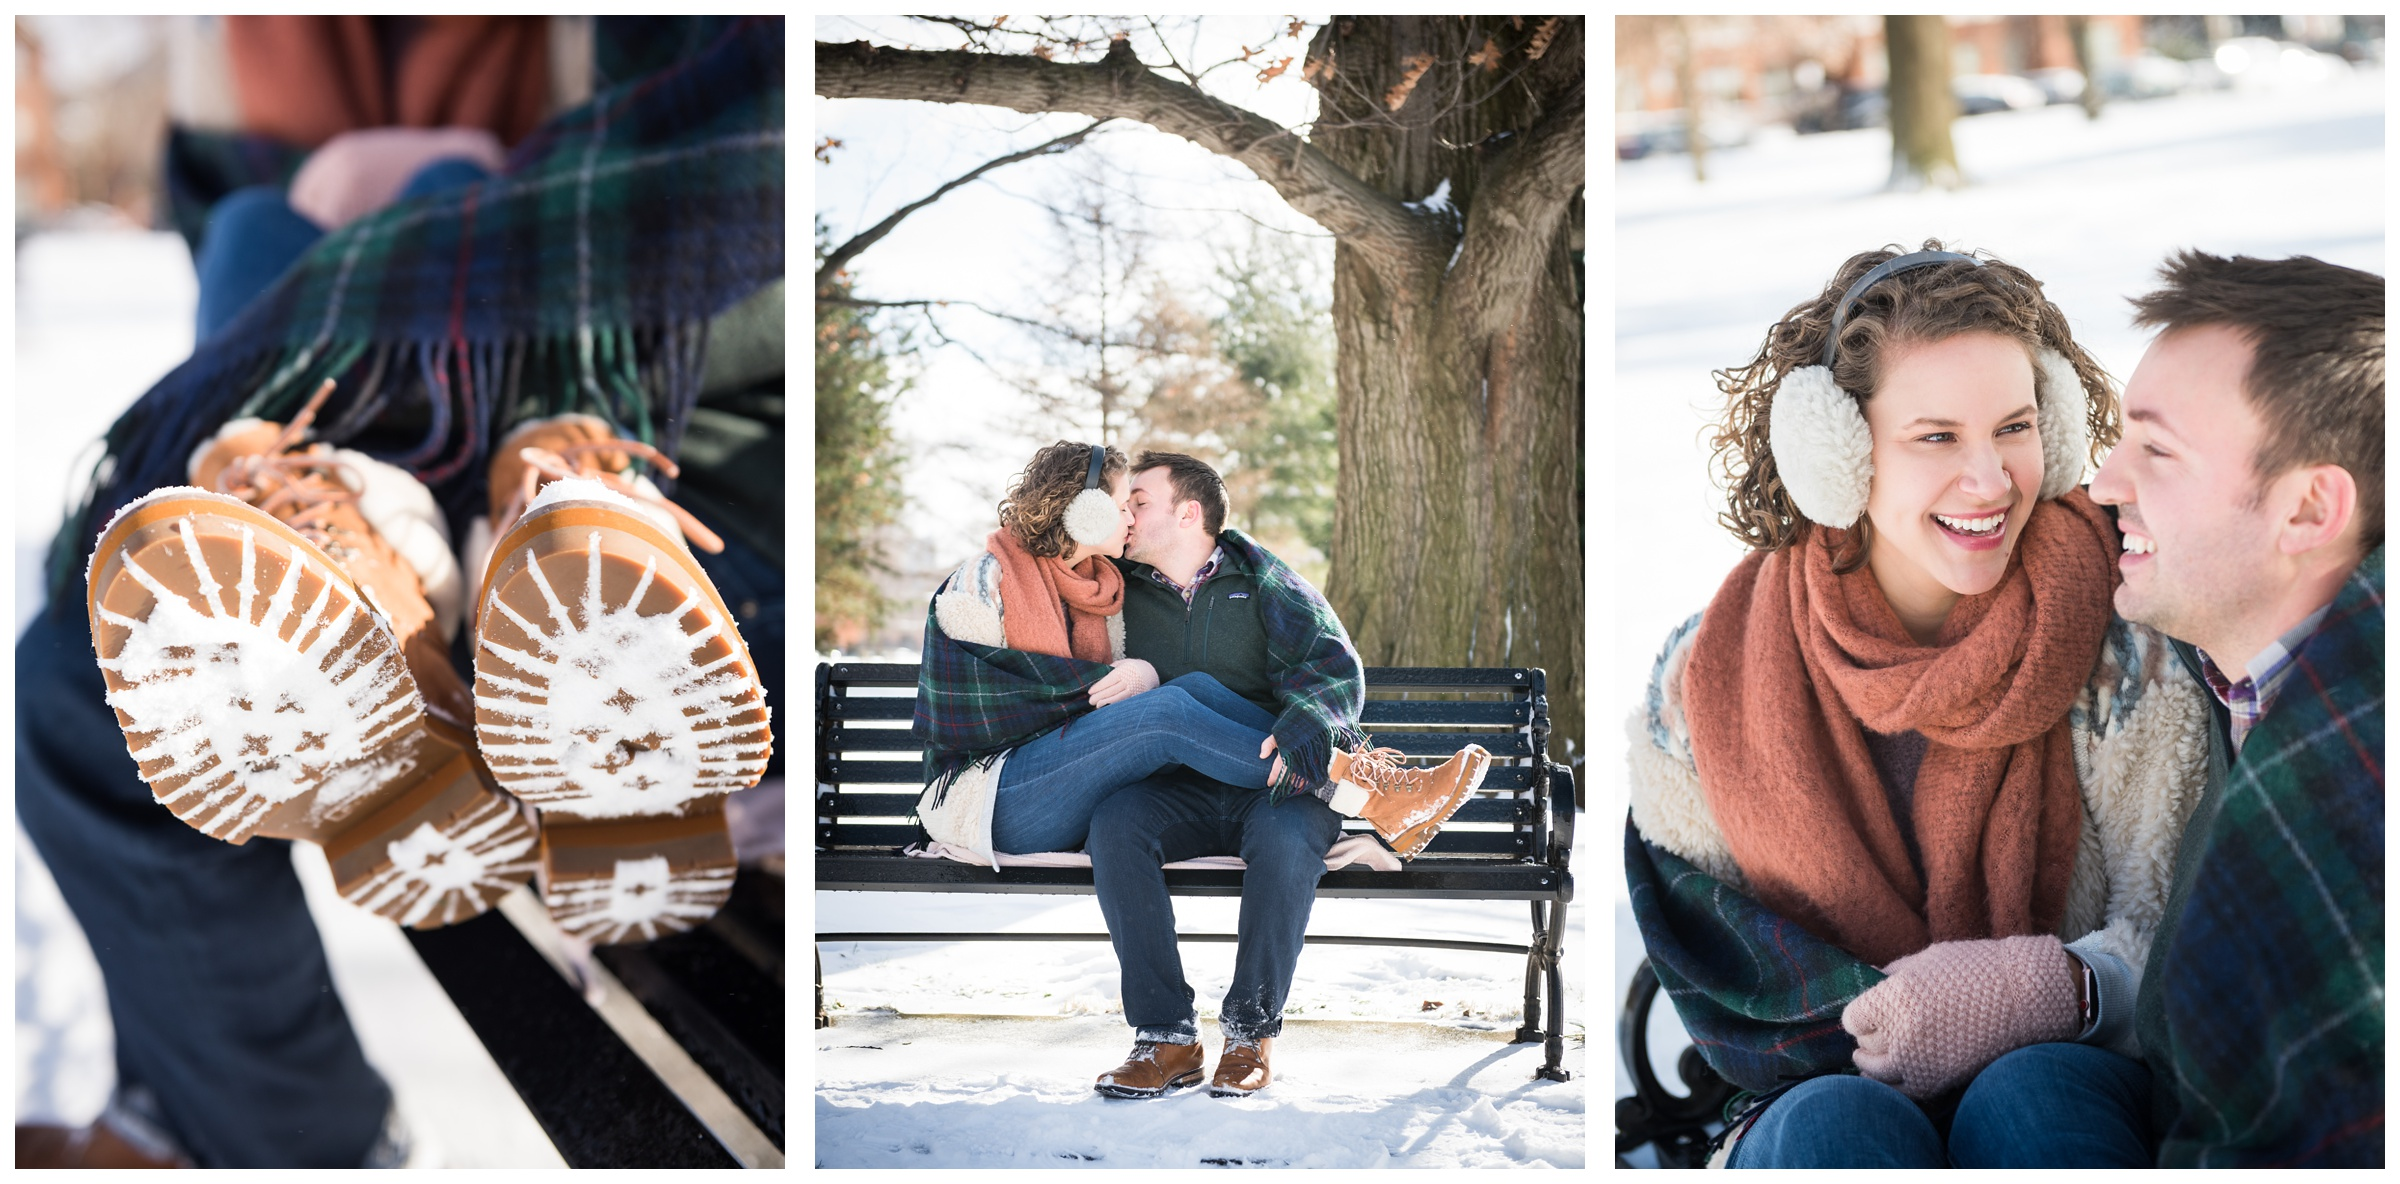 snowy winter engagement session at Goodale Park by Columbus, Ohio wedding photographer